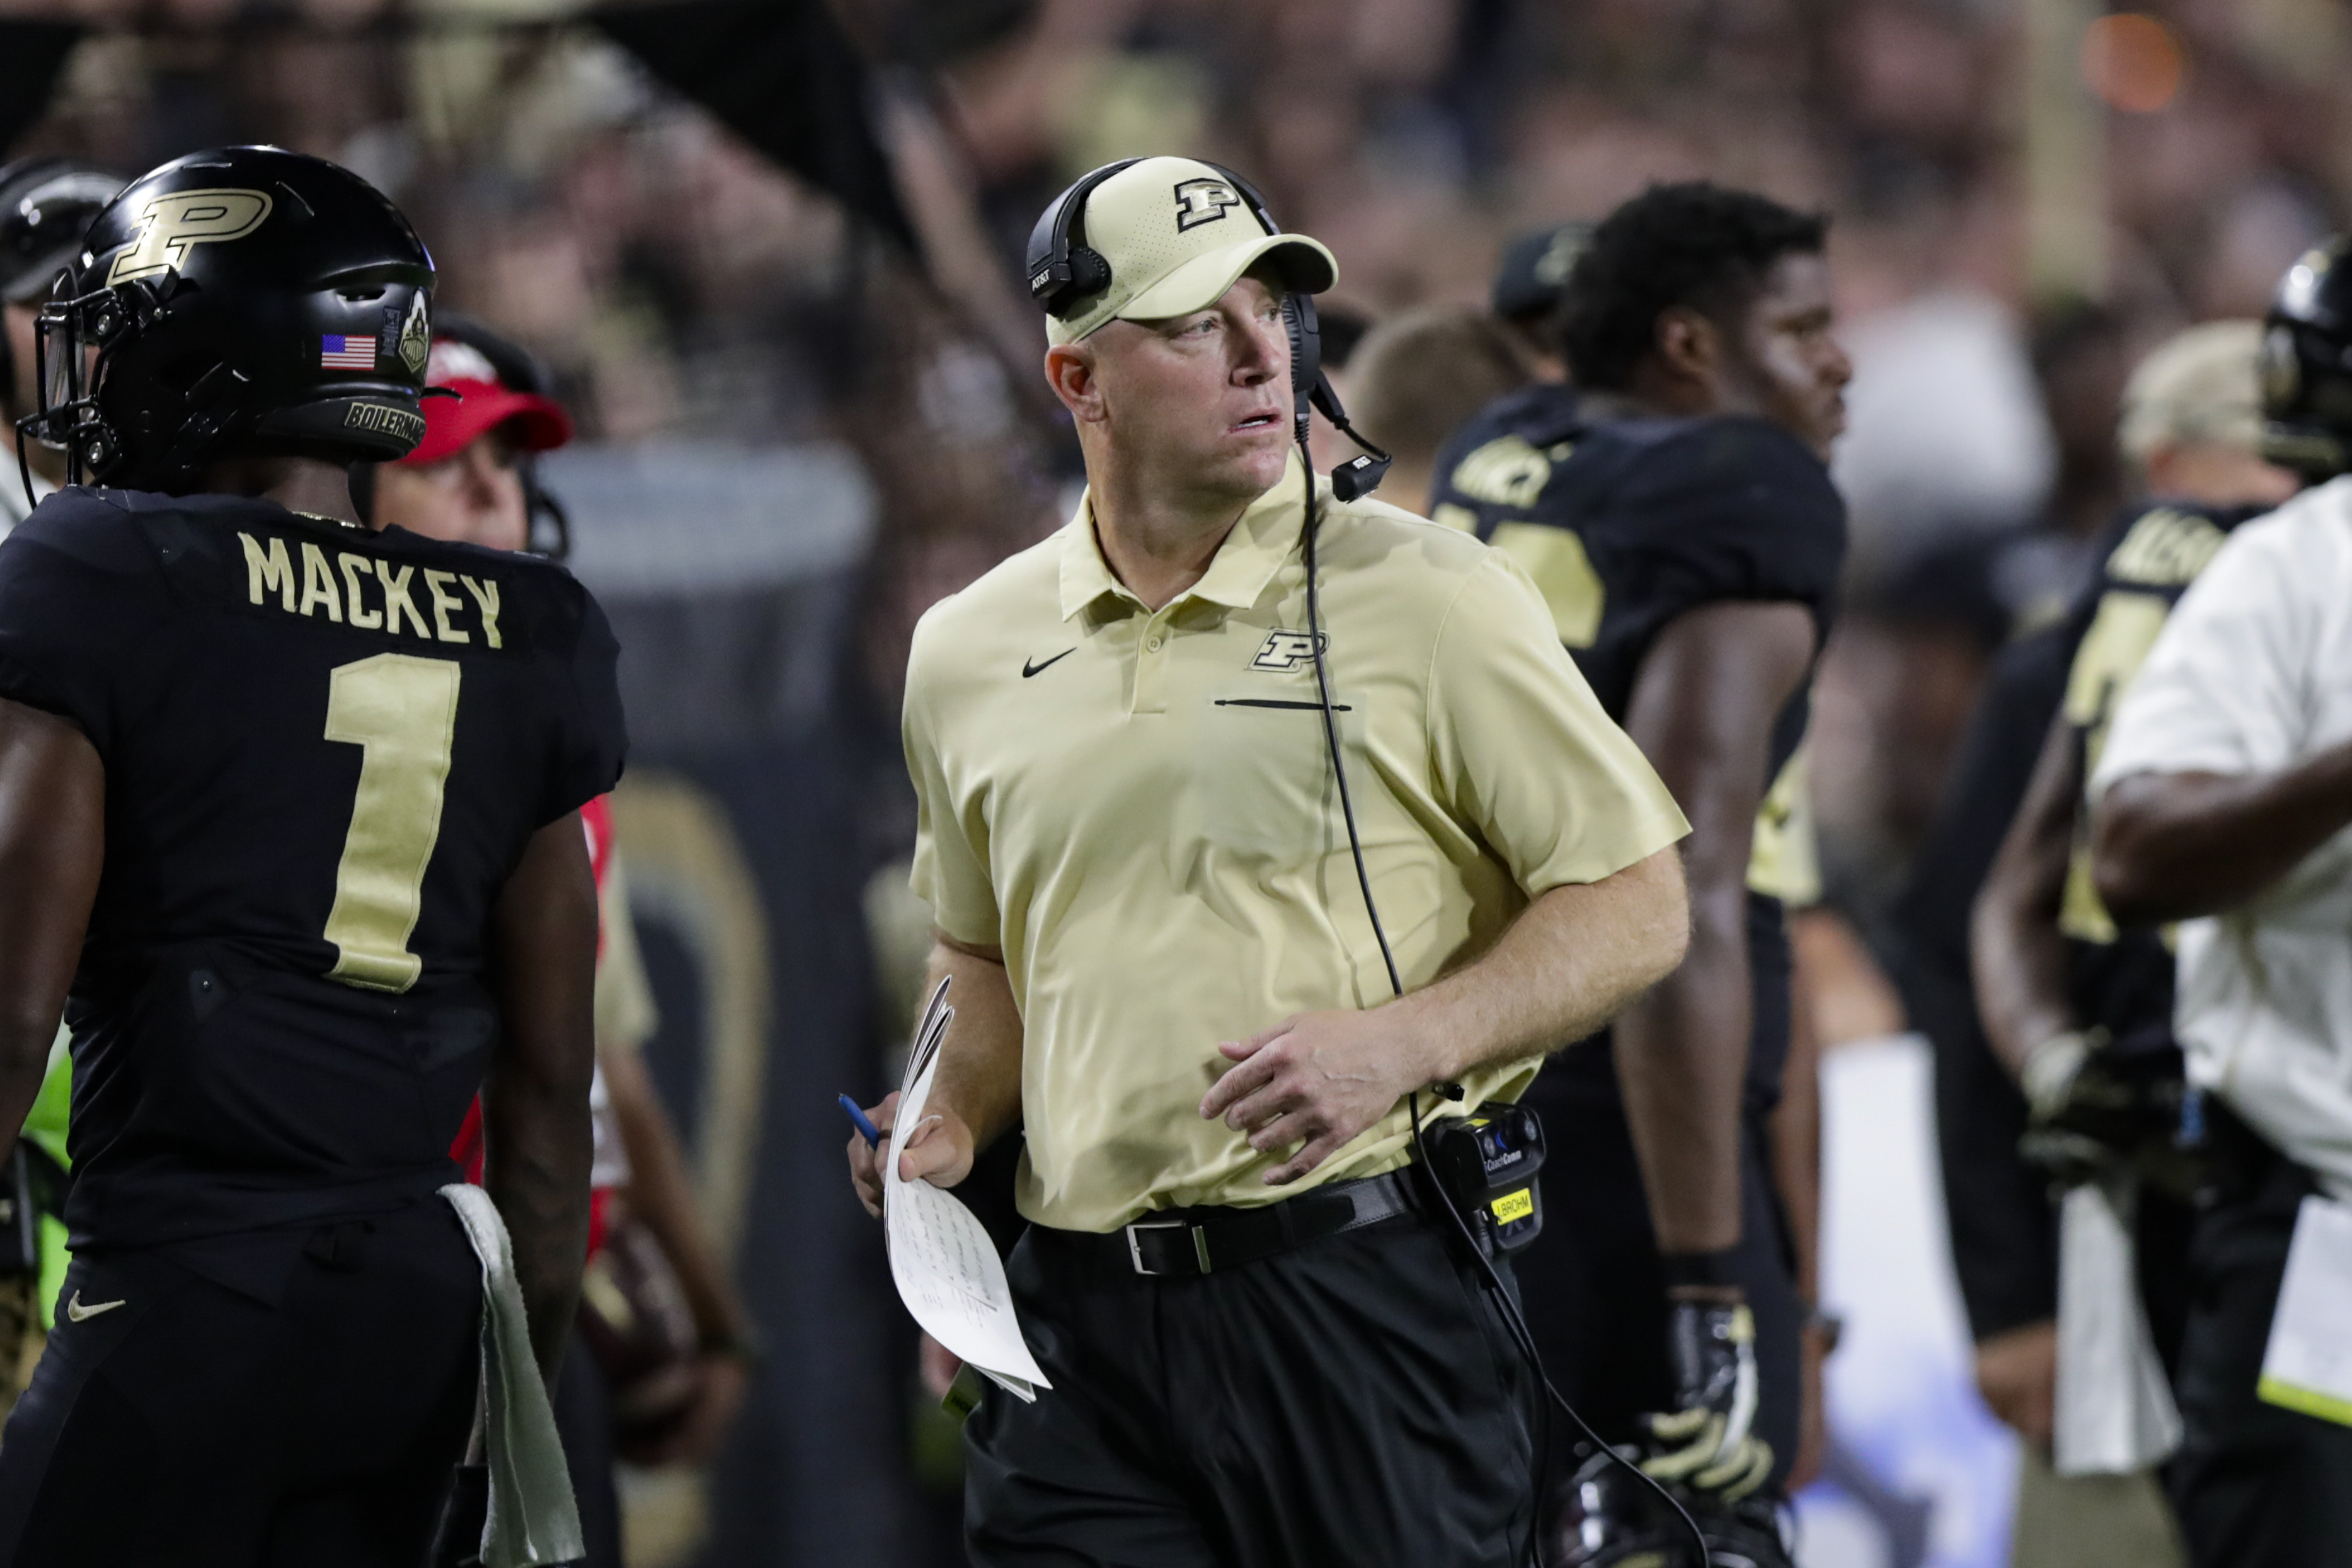 Purdue head coach Jeff Brohm during the second half of an NCAA college football game against TCU in West Lafayette, Ind., Saturday, Sept. 14, 2019. (AP Photo/Michael Conroy)